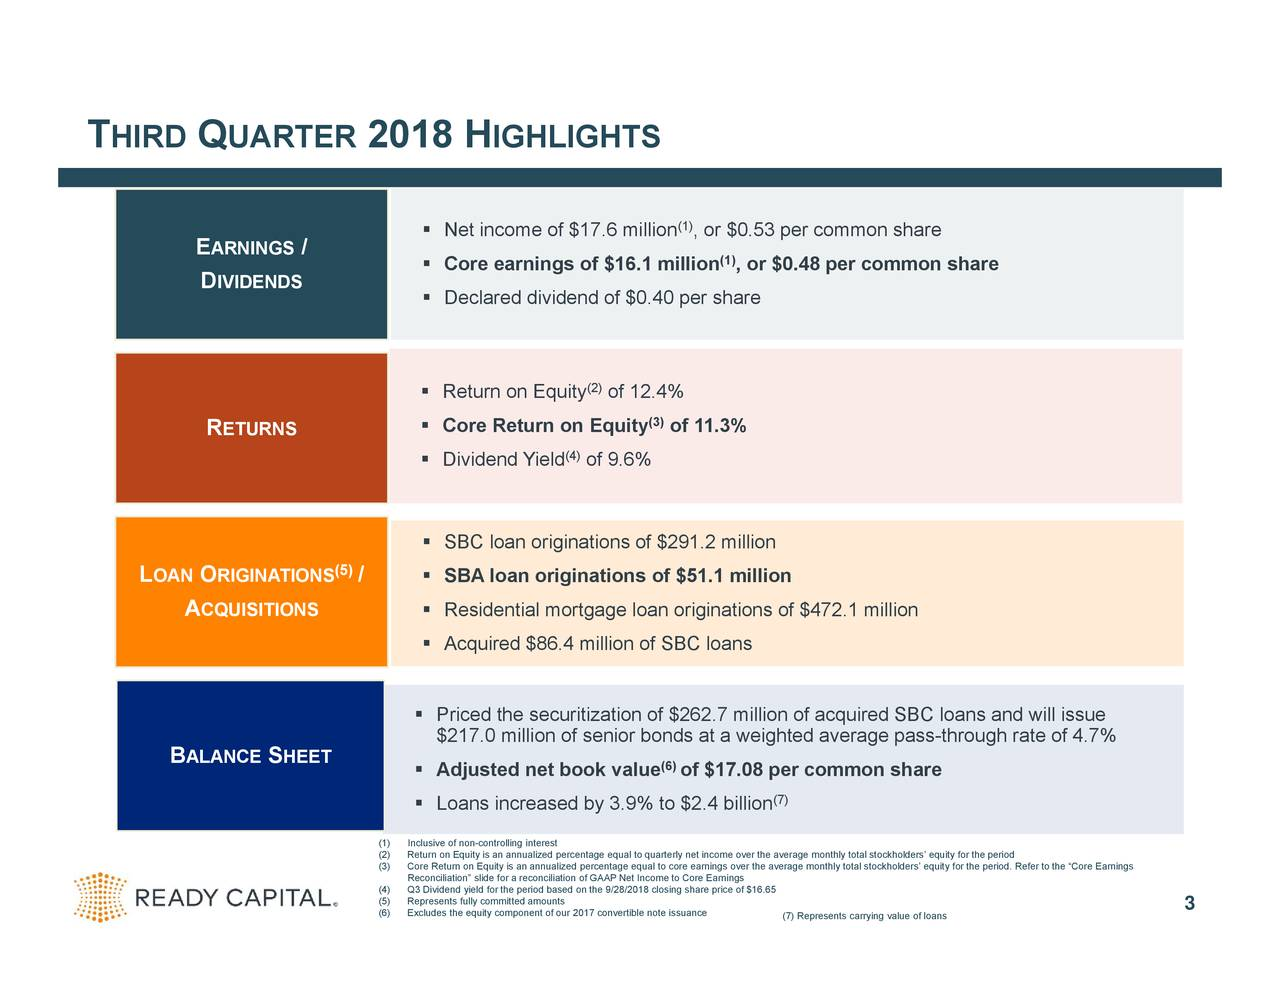 """gh rate of 4.7% ns and will issue ity for the period. Refer to the """"Core Earnings (7) Represents carrying value of loans (7) , or $0.48 per common share (1) , or $0.53 per common share iginations of $472.1 million (1) of 11.3% of $17.08rly ing share price of $16.65ge monthly total stockholders' equit (6) (3) of 12.4% (2) of 9.6% (4) conciliation of GAAP Net Income t IGHLIGHTS NetC icrDmealaf$1gsRetuCrorDnvEdtuiyYoielEquityoaicintielPri$217Adjusted net book valuends at a weighted average pass-throu              Reconciliation"""" slide for a re (1)(2ltirnontyoalqlarlneizsaetalgteoeqquuaartleto cerceeqnutablolesnote i 2018 H / (5) / SEET UARTER ARNINGSDENDS ETURNS RIGINATIONS Q E D R O CQUISITIONS A ALANCE B LAN HIRD T"""